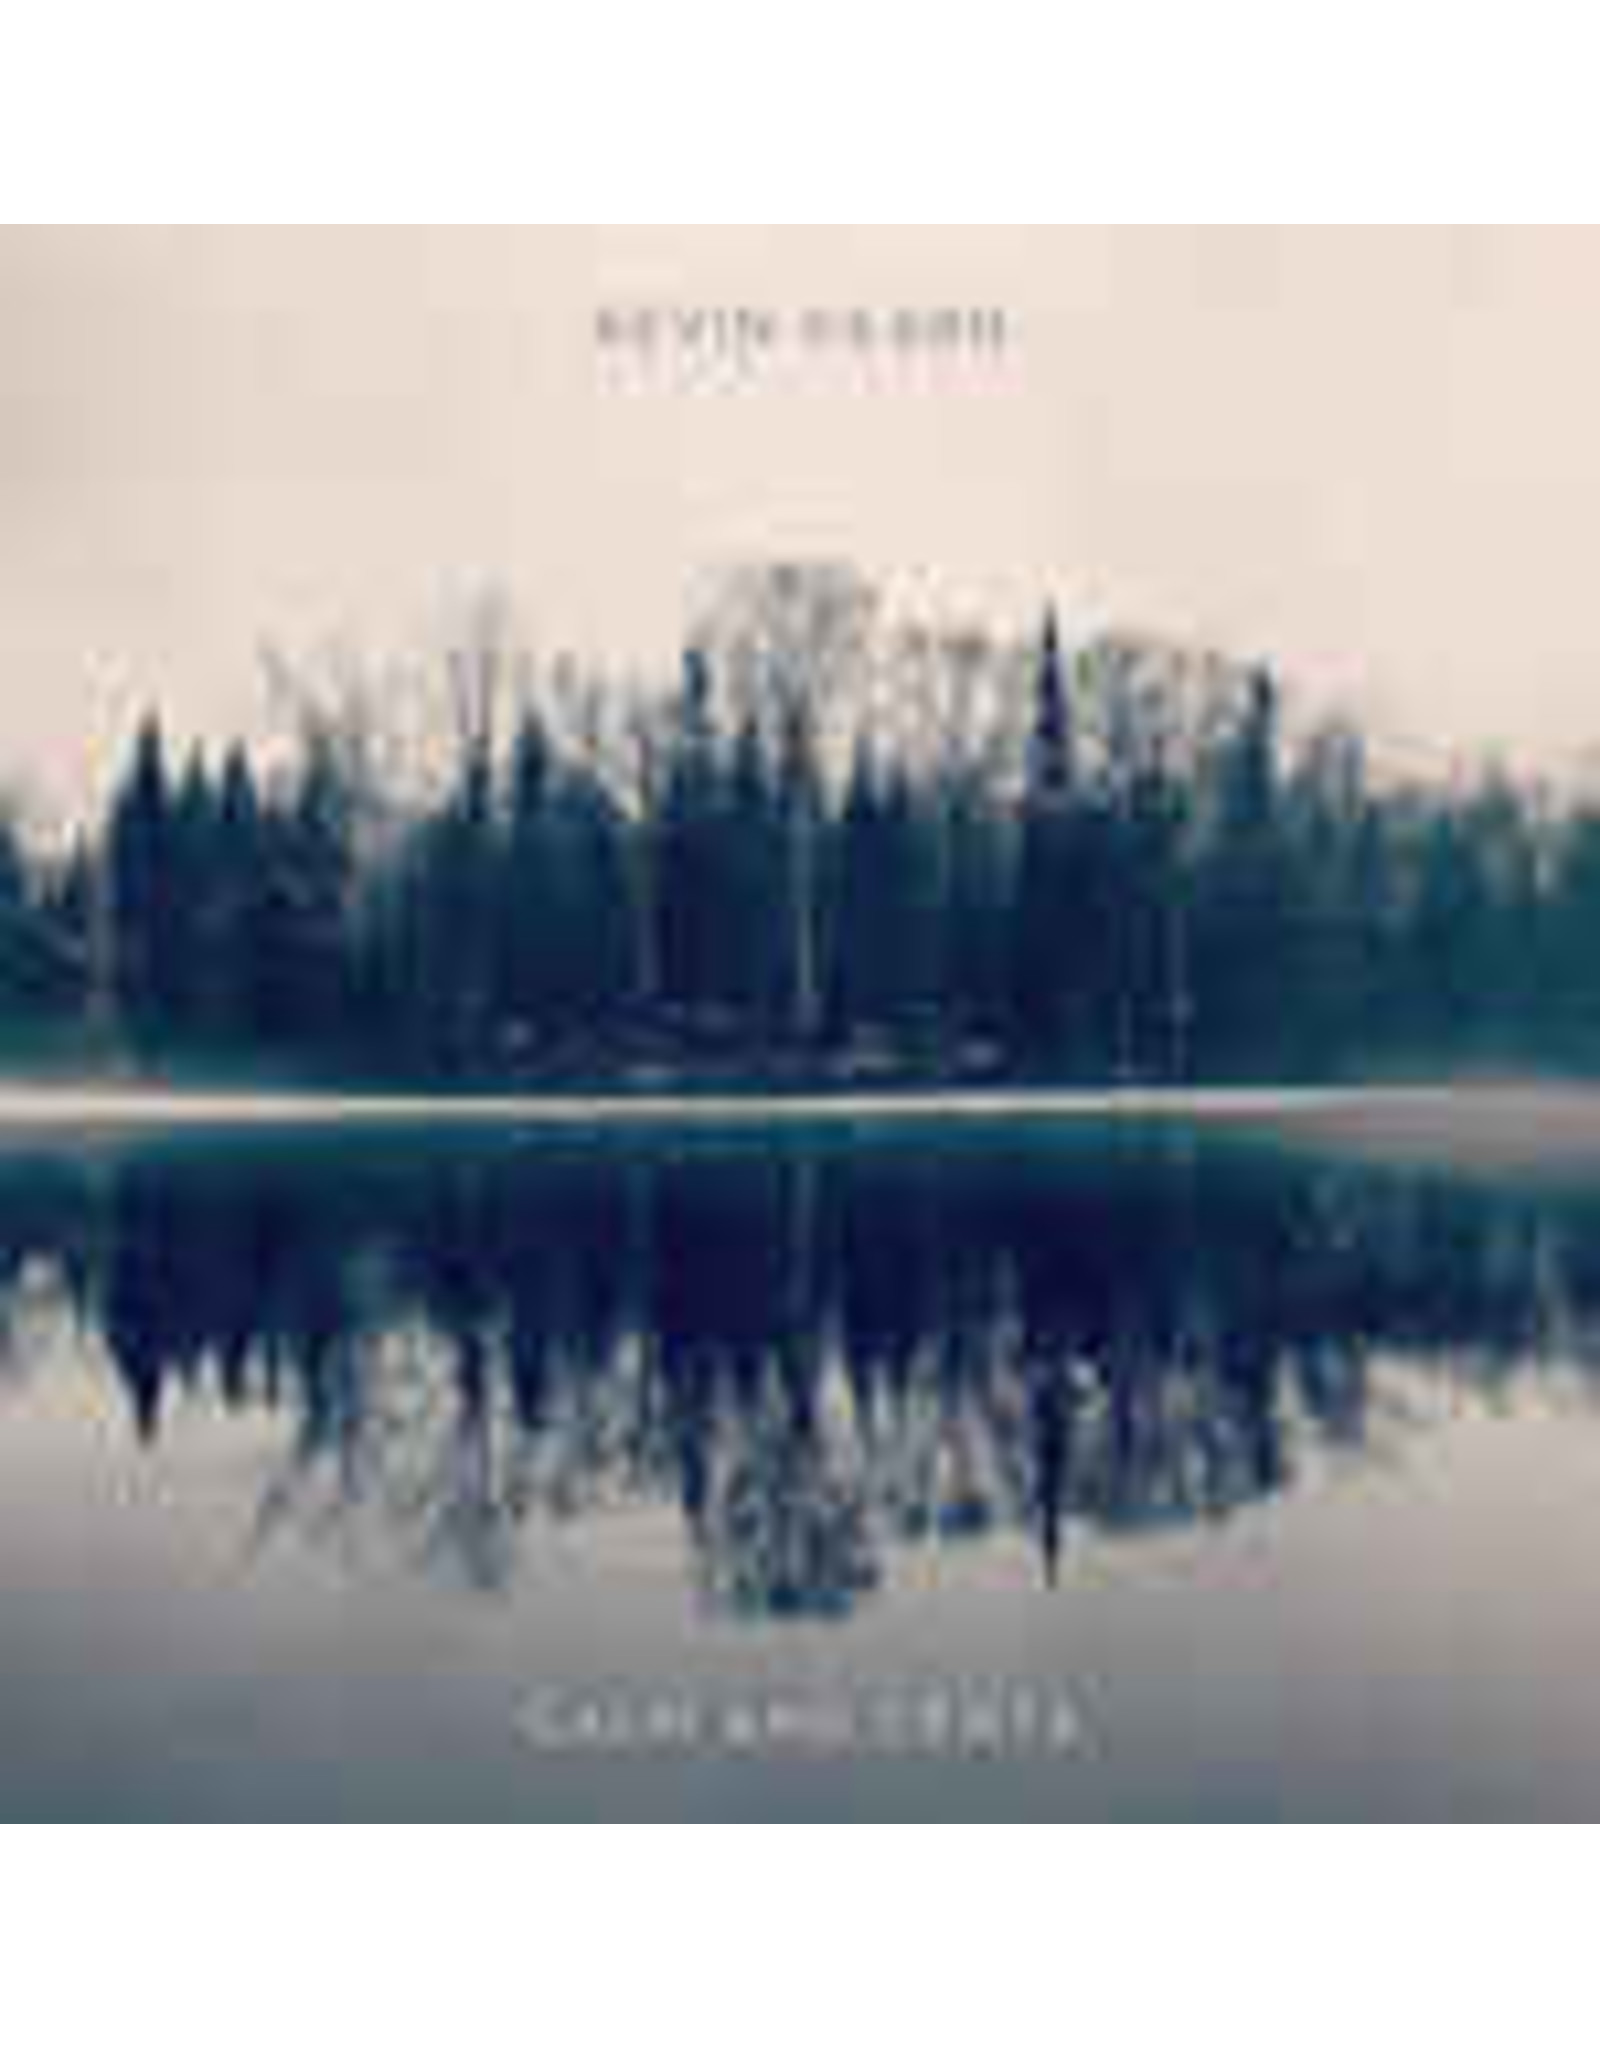 Hearn, Kevin (Barenaked Ladies) - Calm And Cents LP